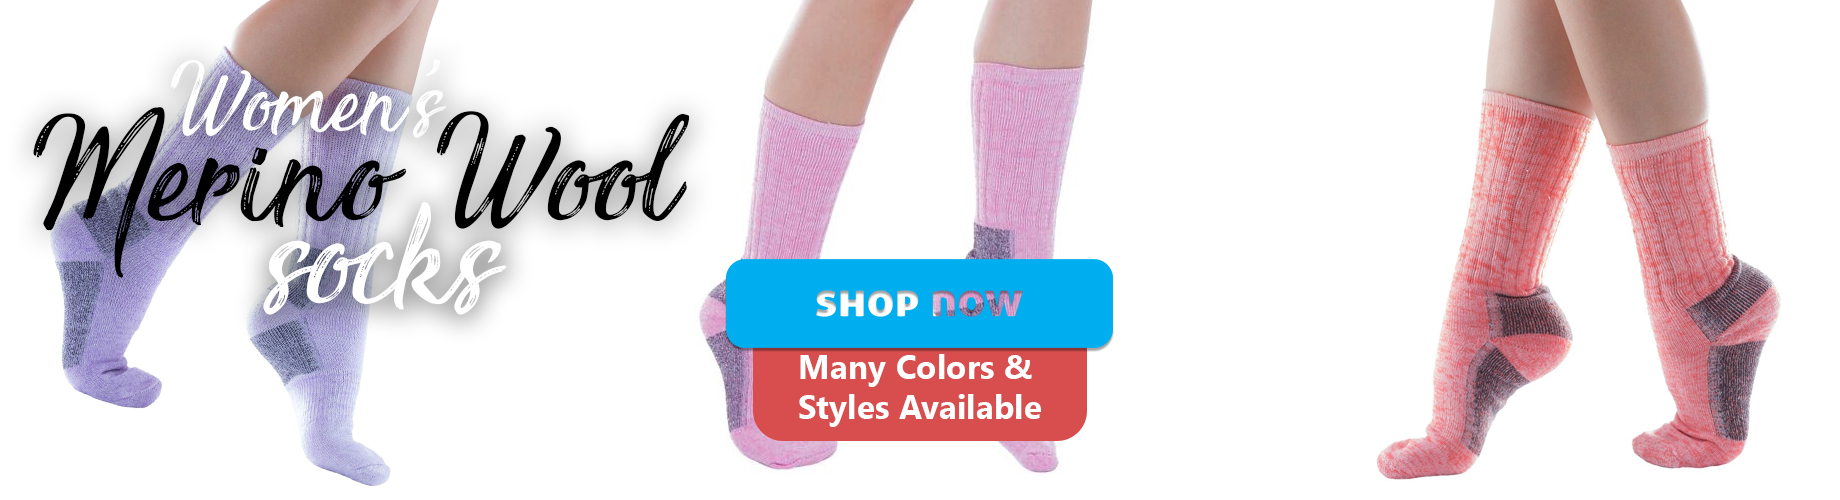 womens merino wool socks cheap bulk